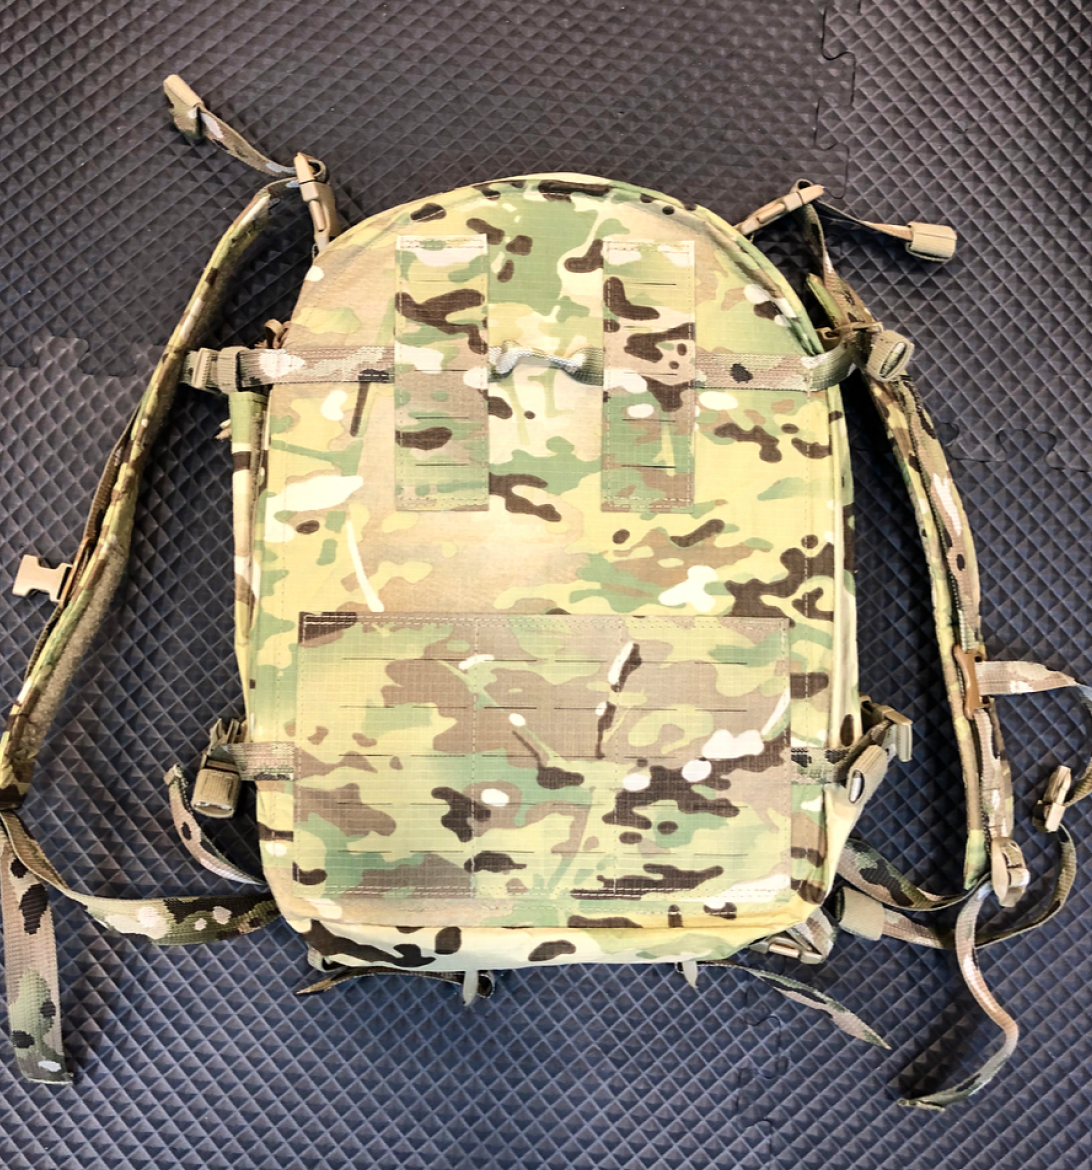 KILAGRAM Assault Medic Bag